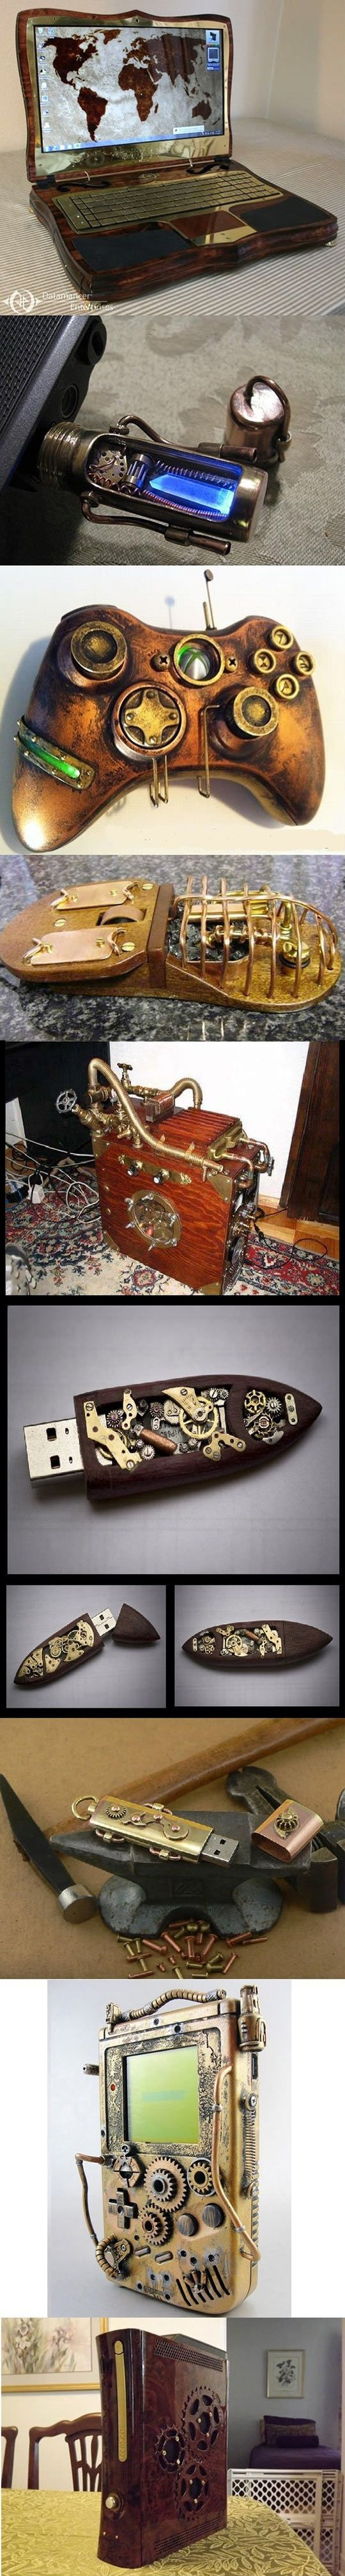 Steampunk mods.